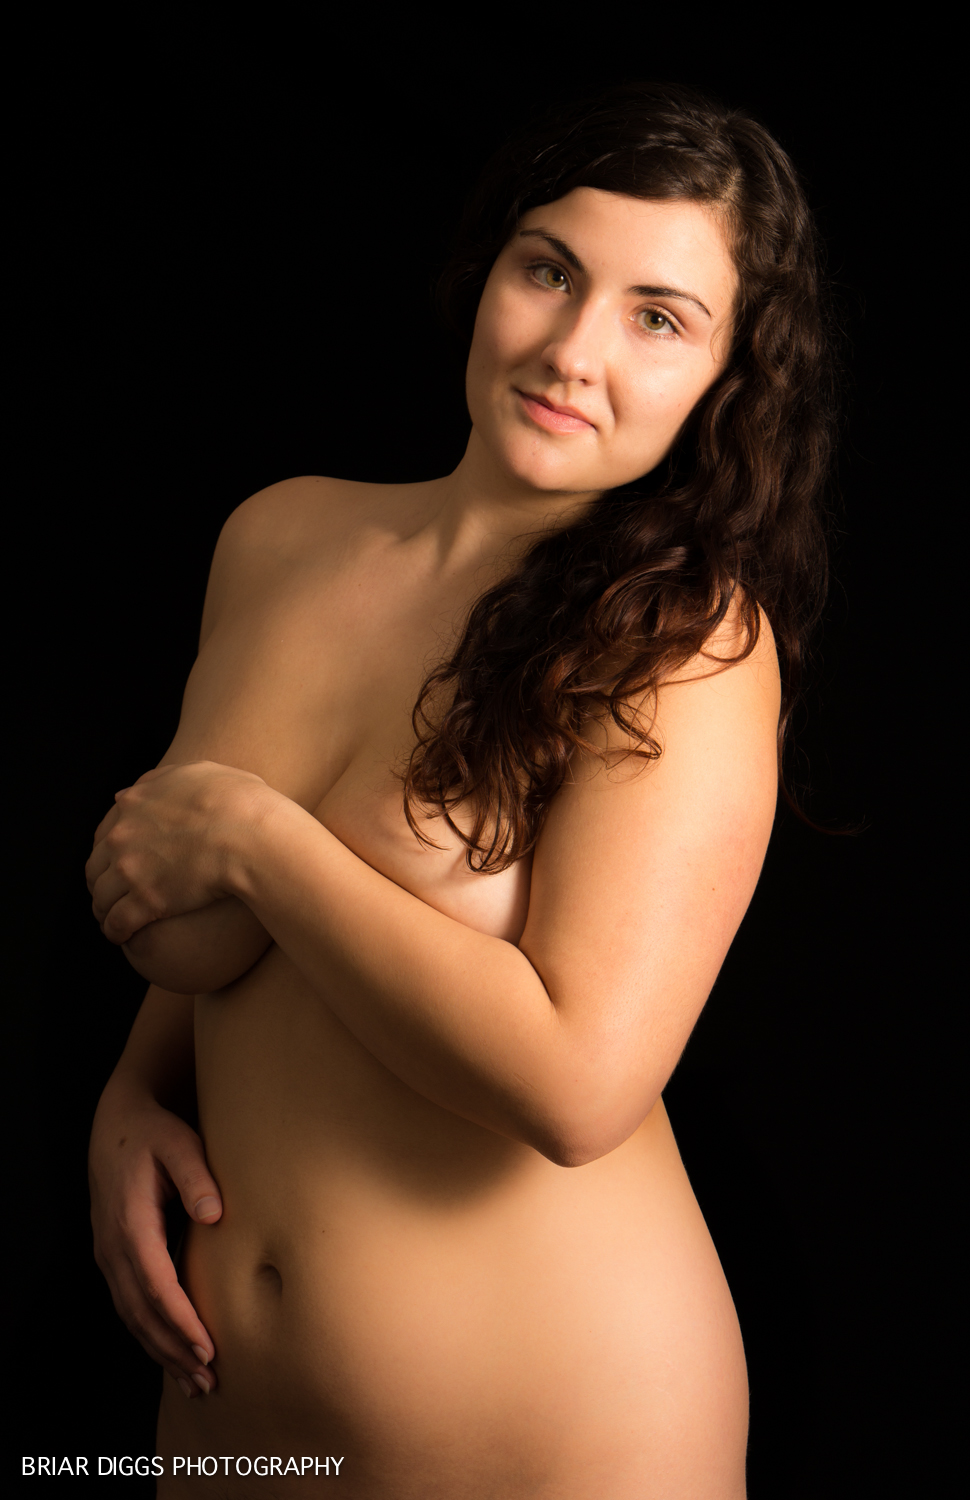 MODELS ART NUDES (COLOR)-40.jpg